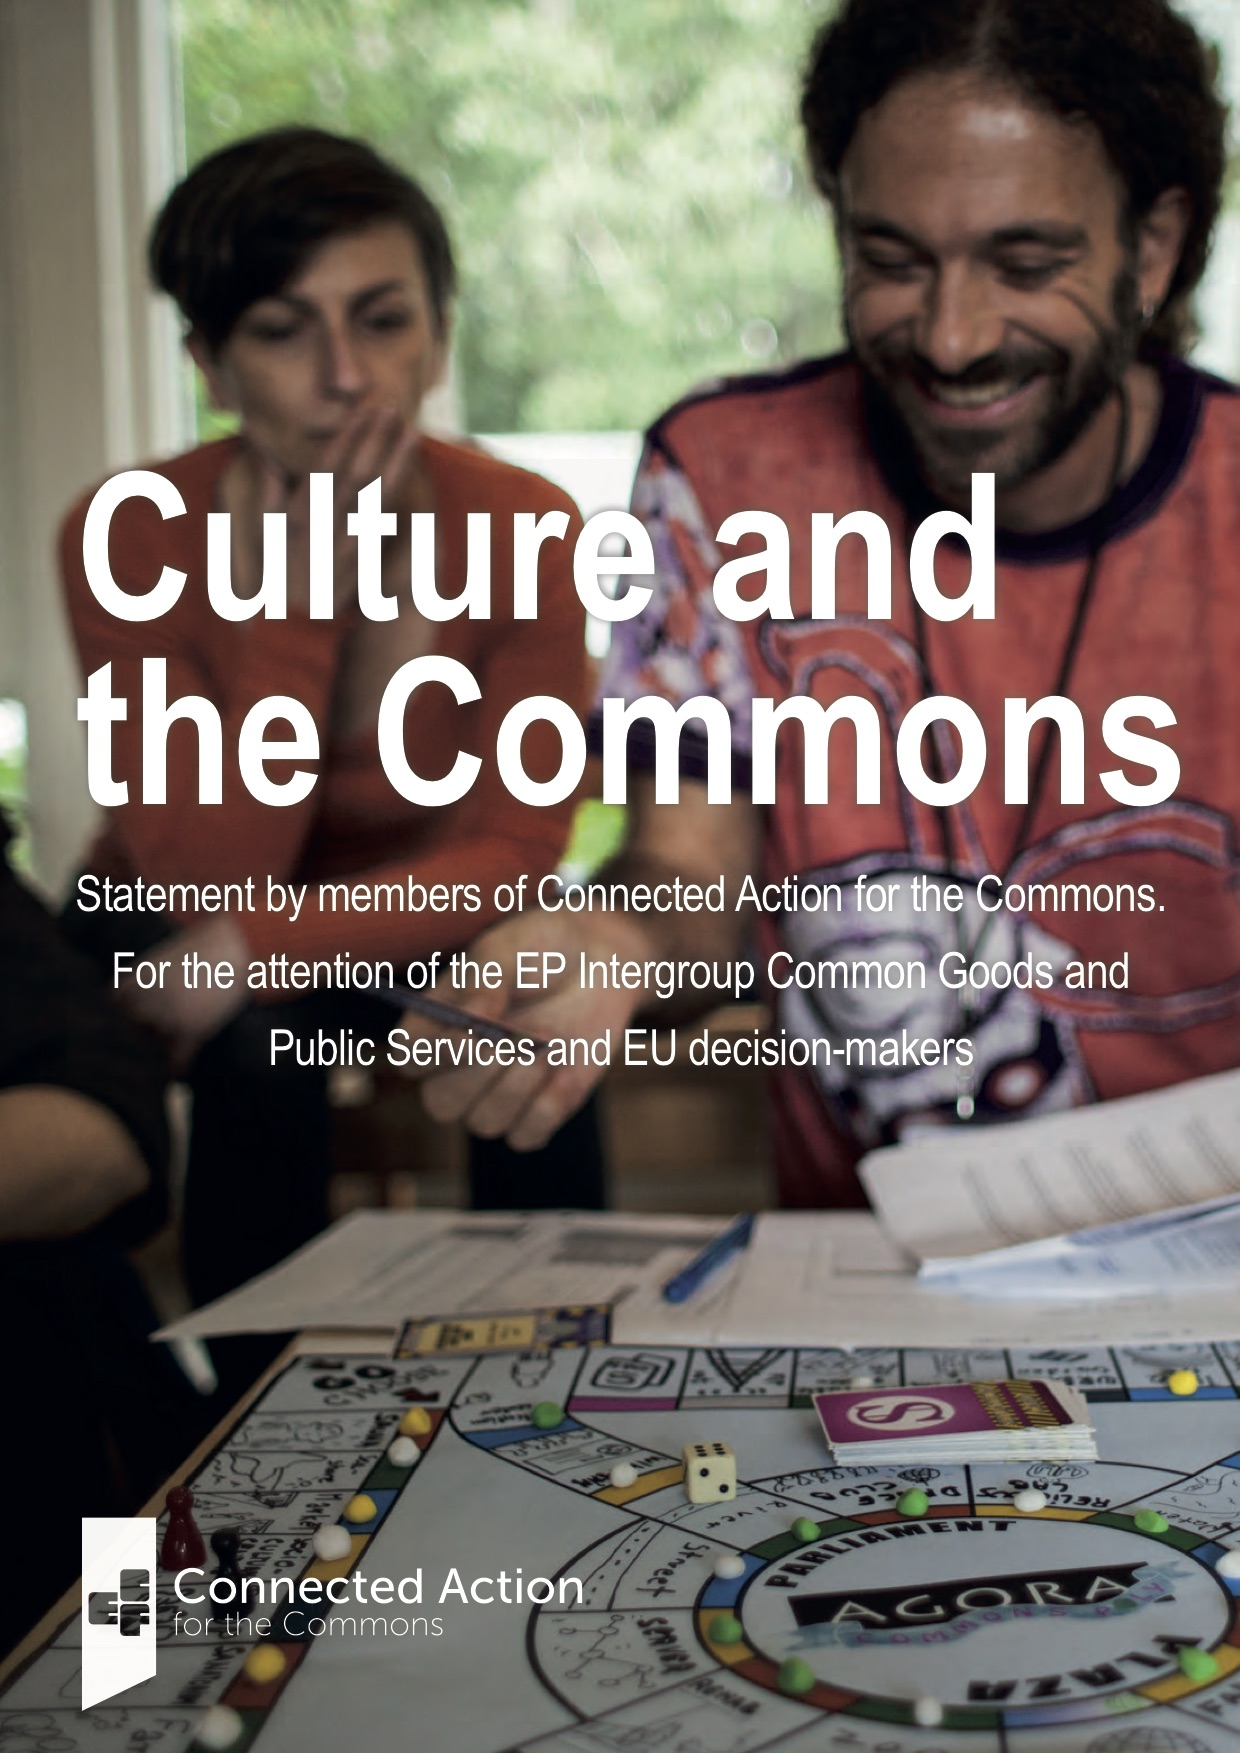 Culture_ and_the_Commons_006_12pag.jpg